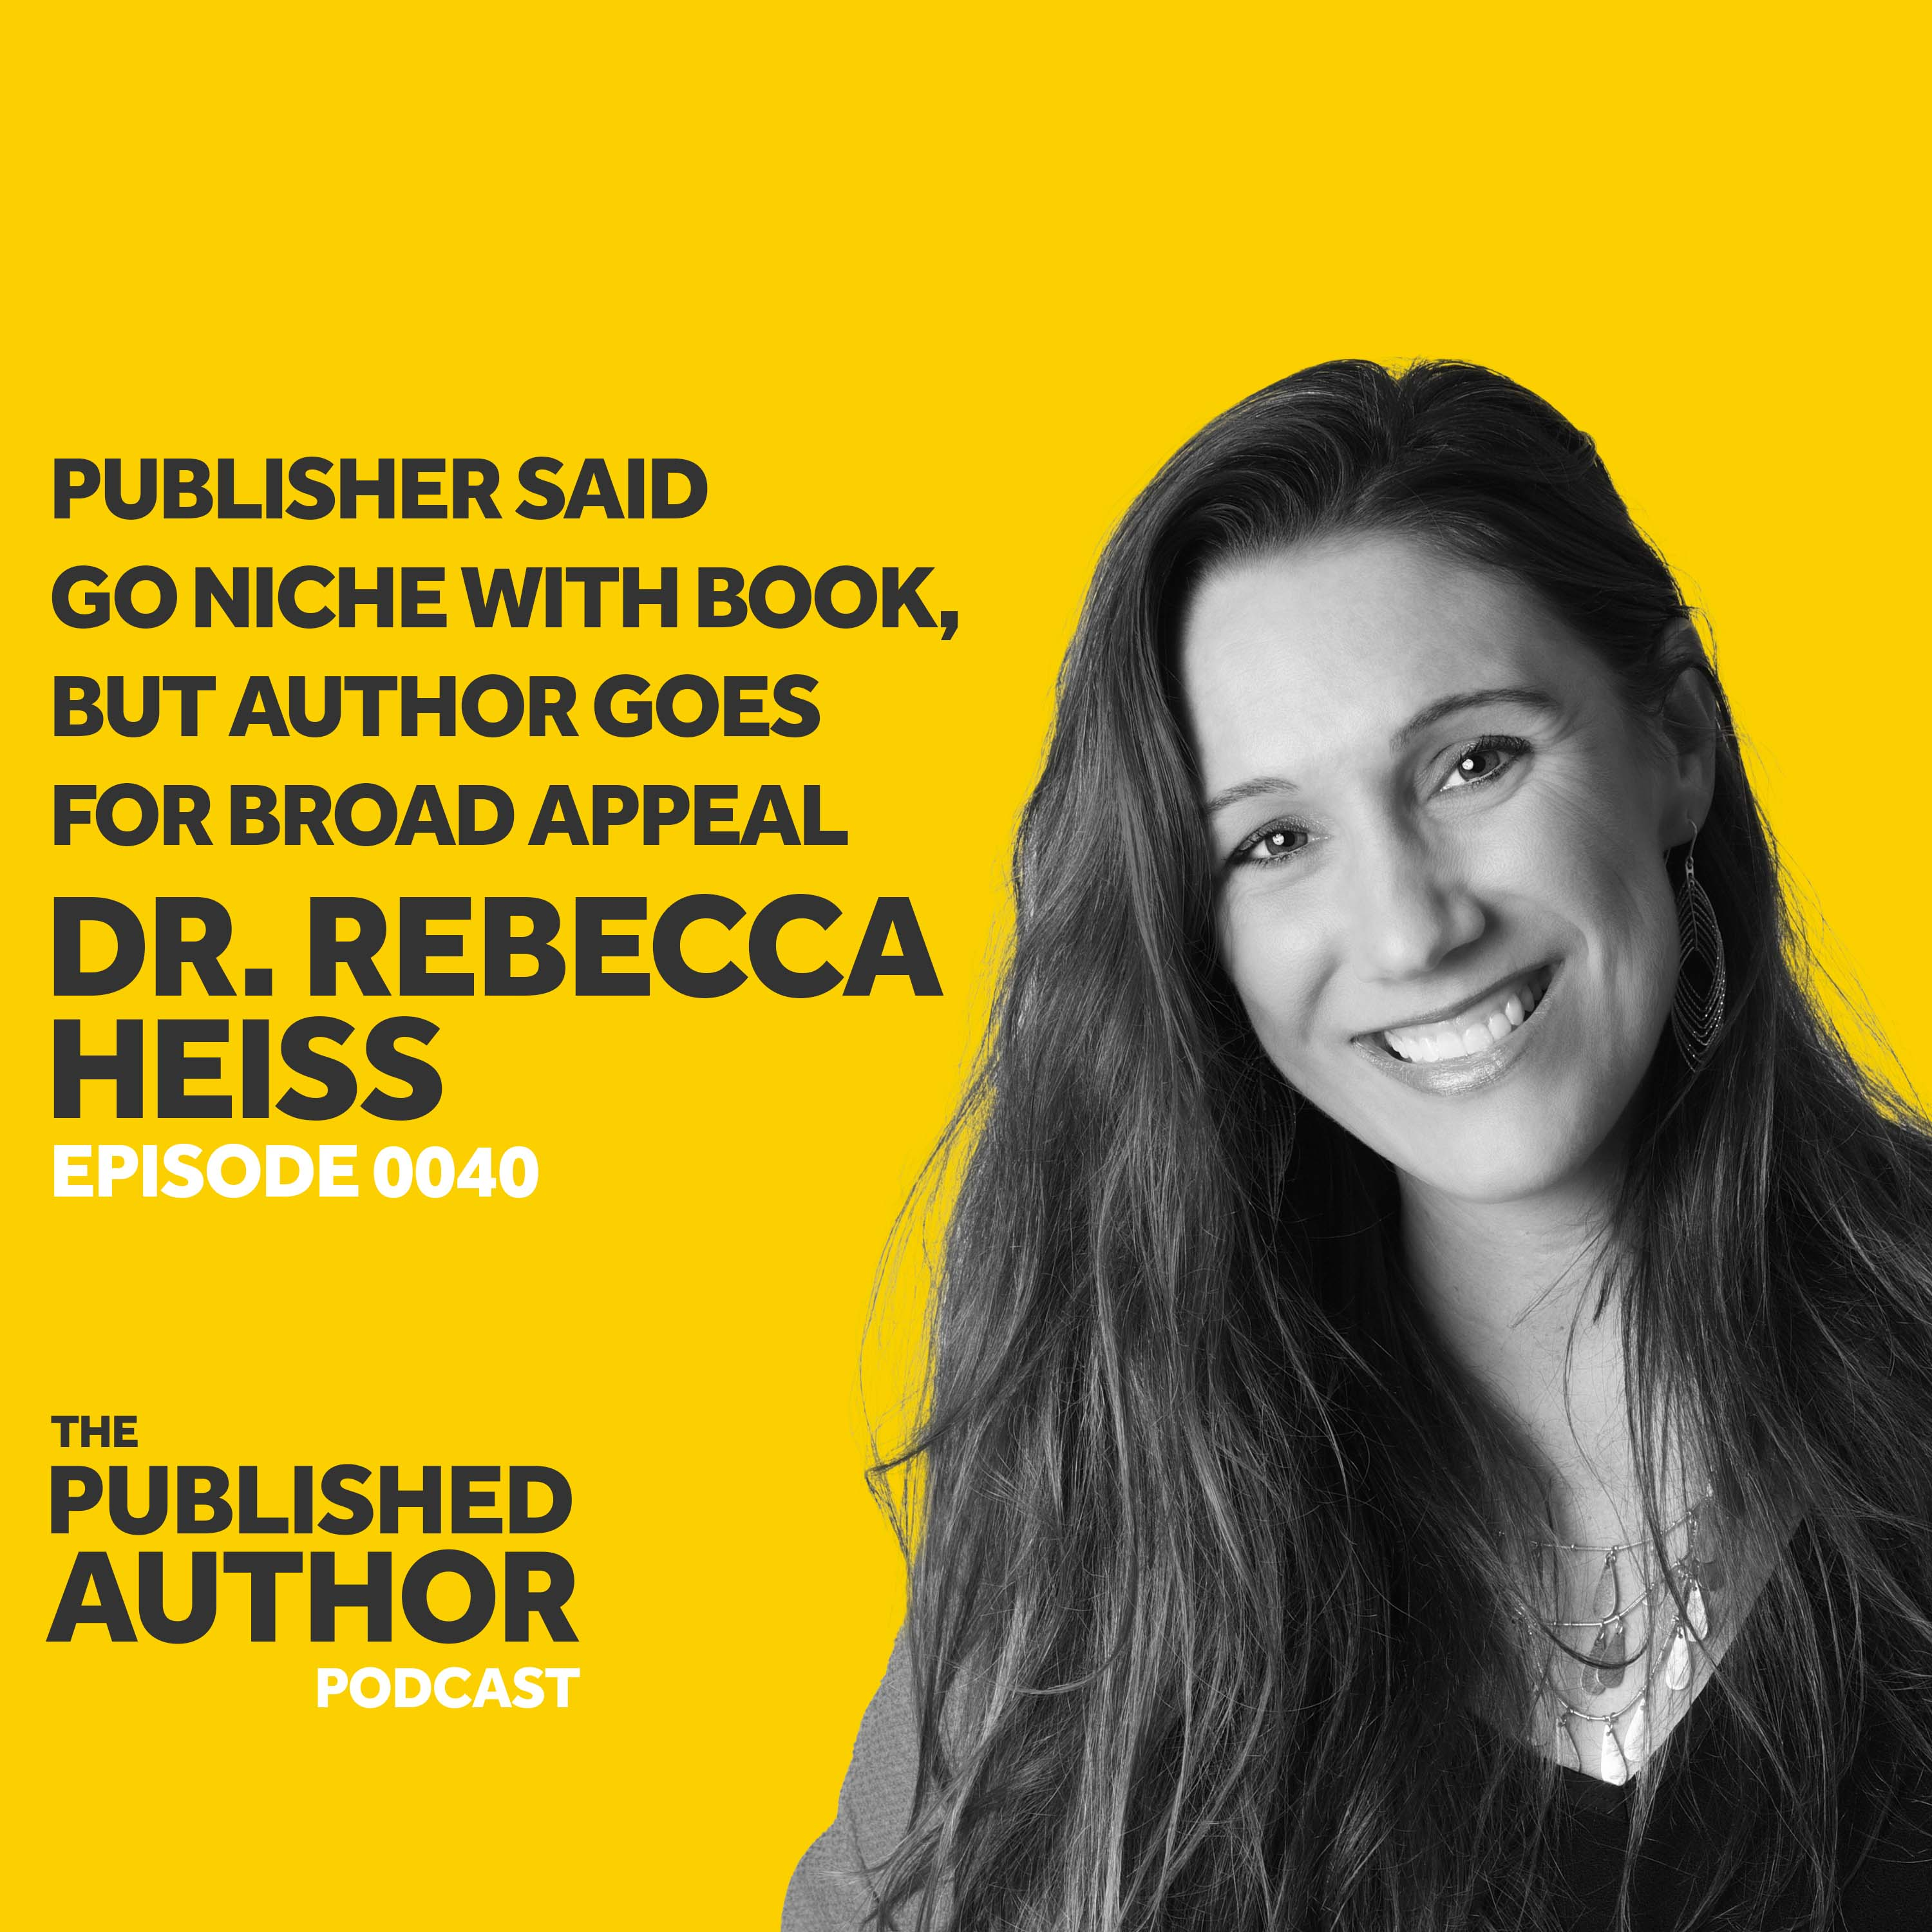 Publisher Said Go Niche With Book, But Author Goes For Broad Appeal